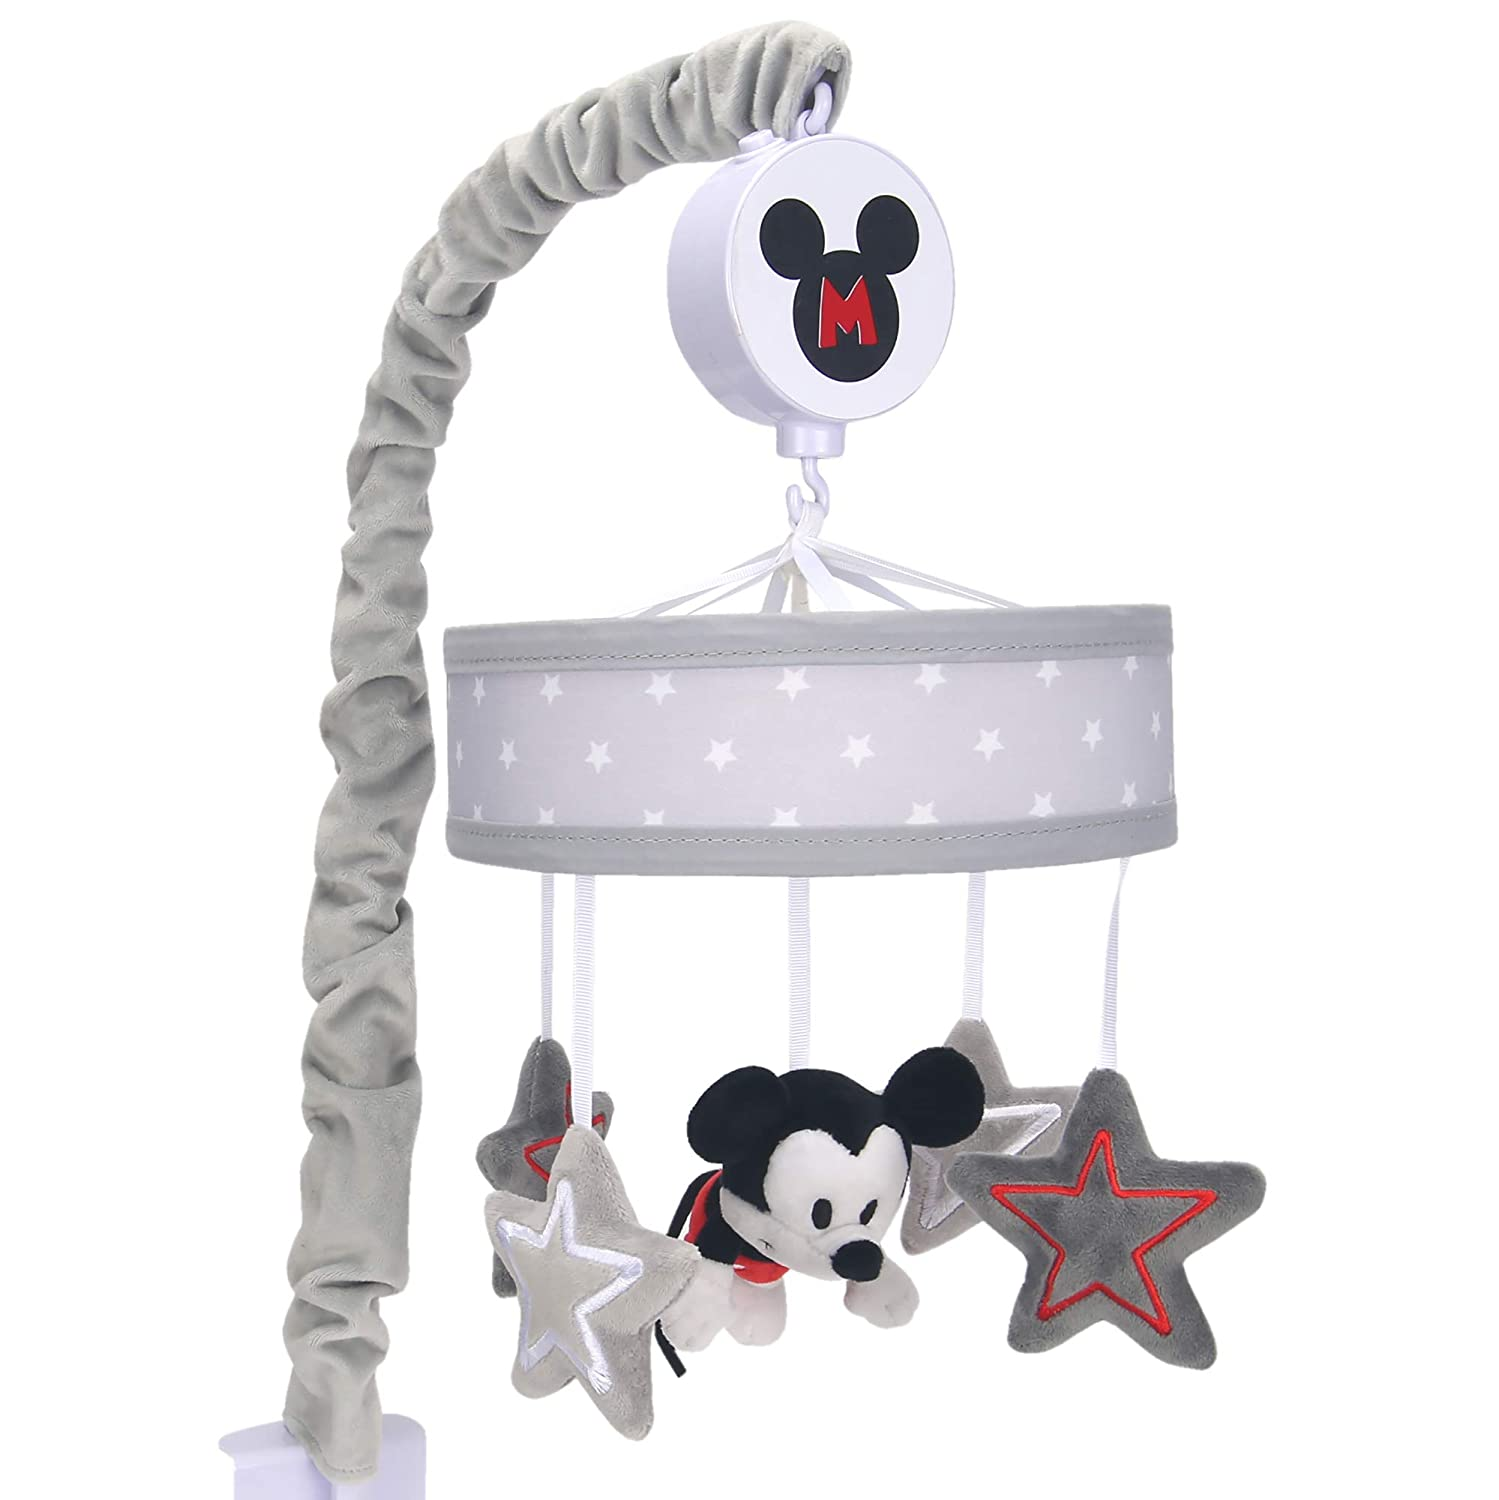 Wholesale Lambs Ivy Rare Disney Baby Magical Crib Mickey Mouse Musical M